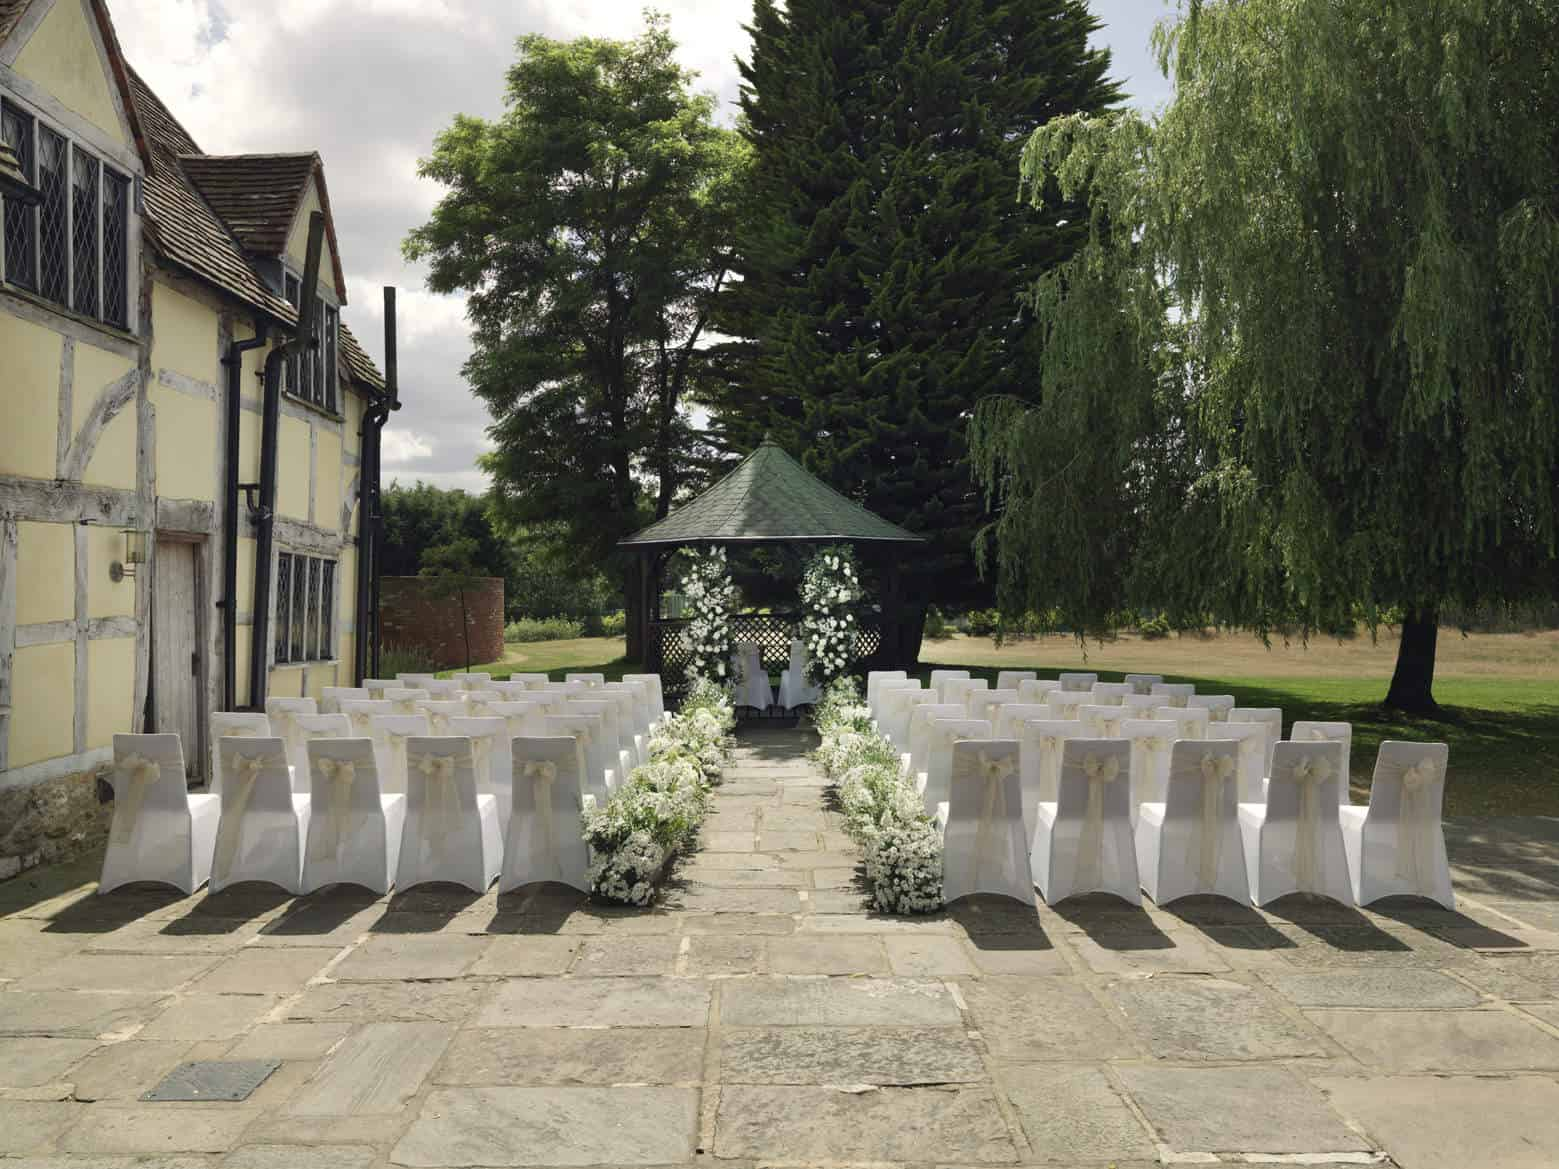 cain manor wedding venue - out door ceremony with white hydrngea plants forming aisle wakway & gazebo arch